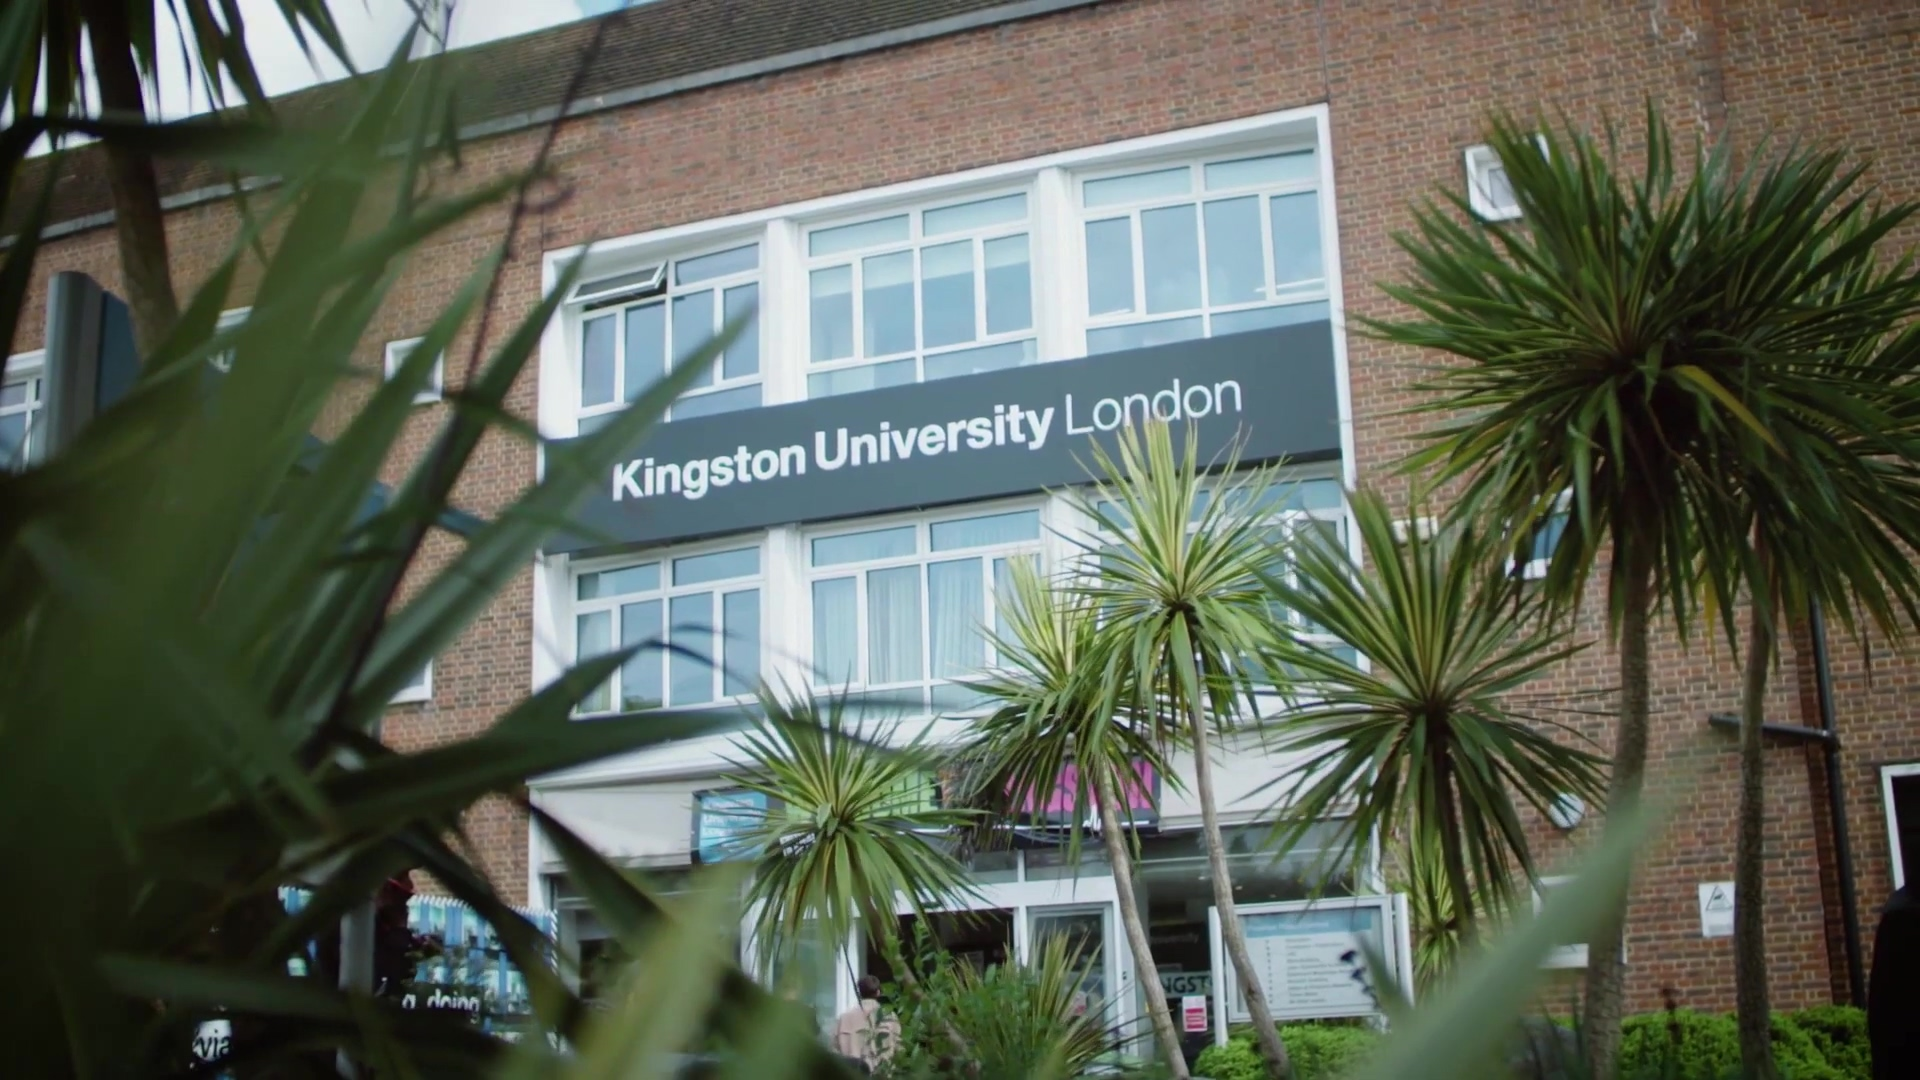 kingston-university-london